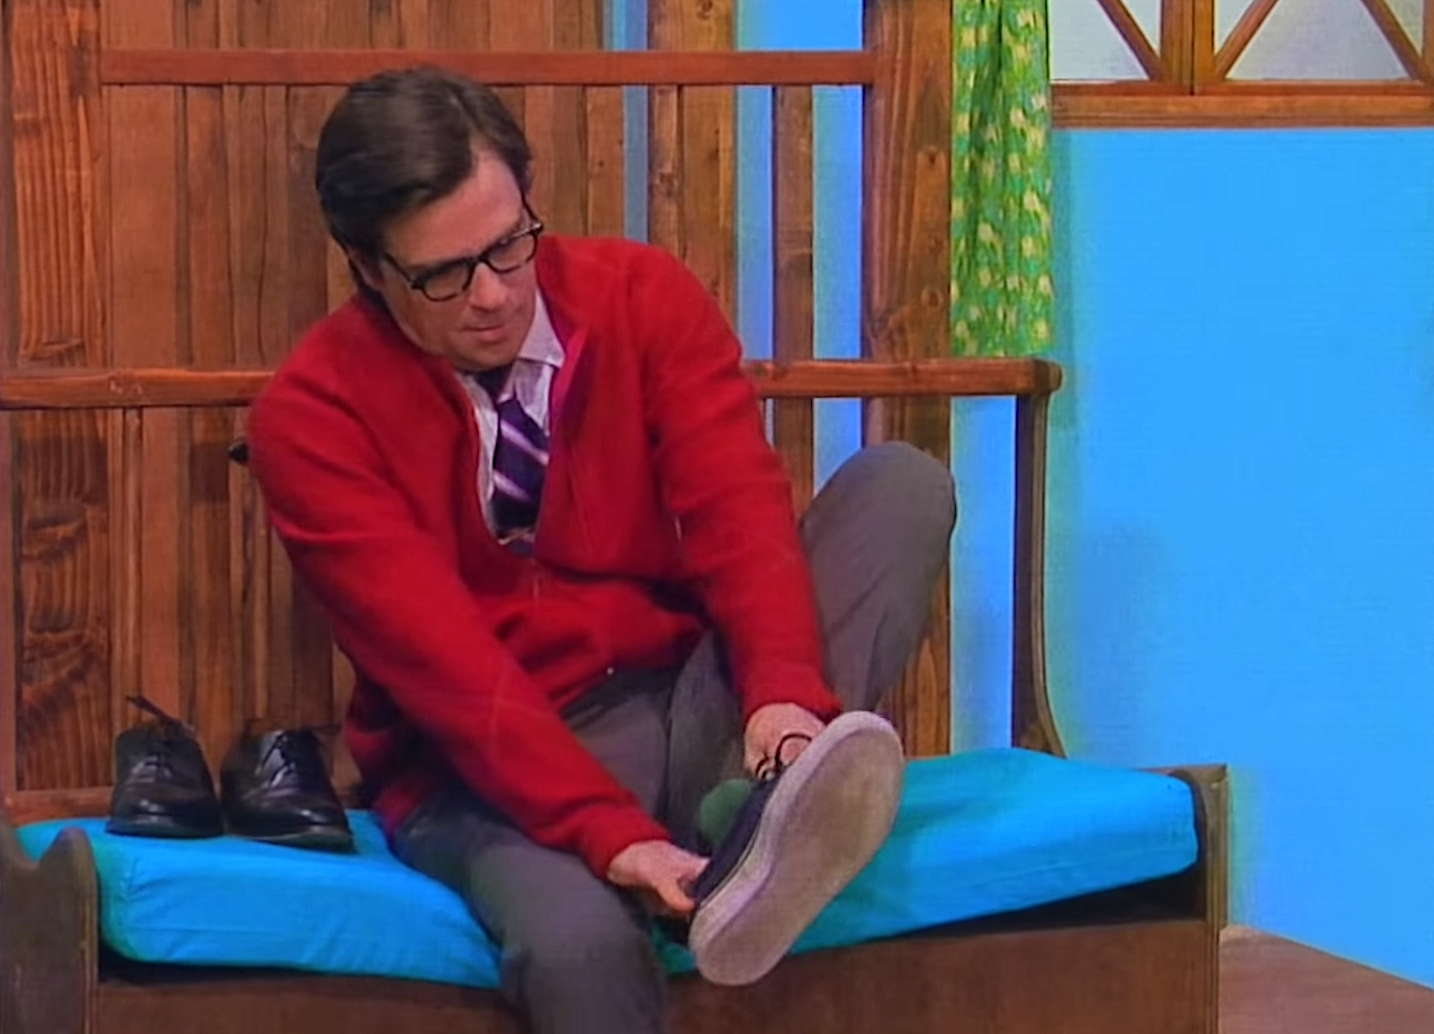 Rivers Cuomo Is an Eerie Mister Rogers in the Music Video for the New Weezer Song 'High as a Kite'